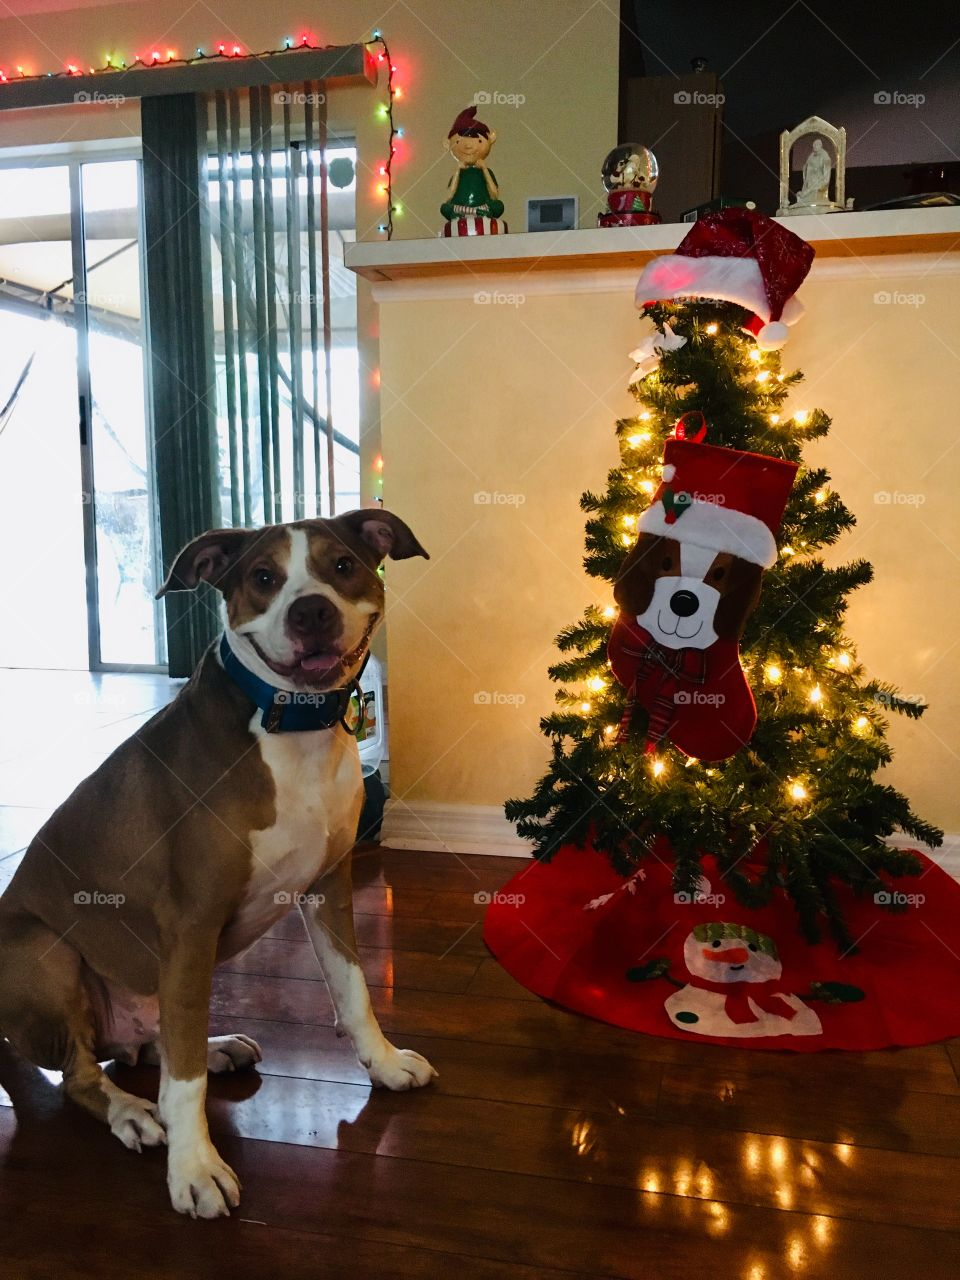 Smiling rescue red nose pitbull next to a puppy Christmas tree